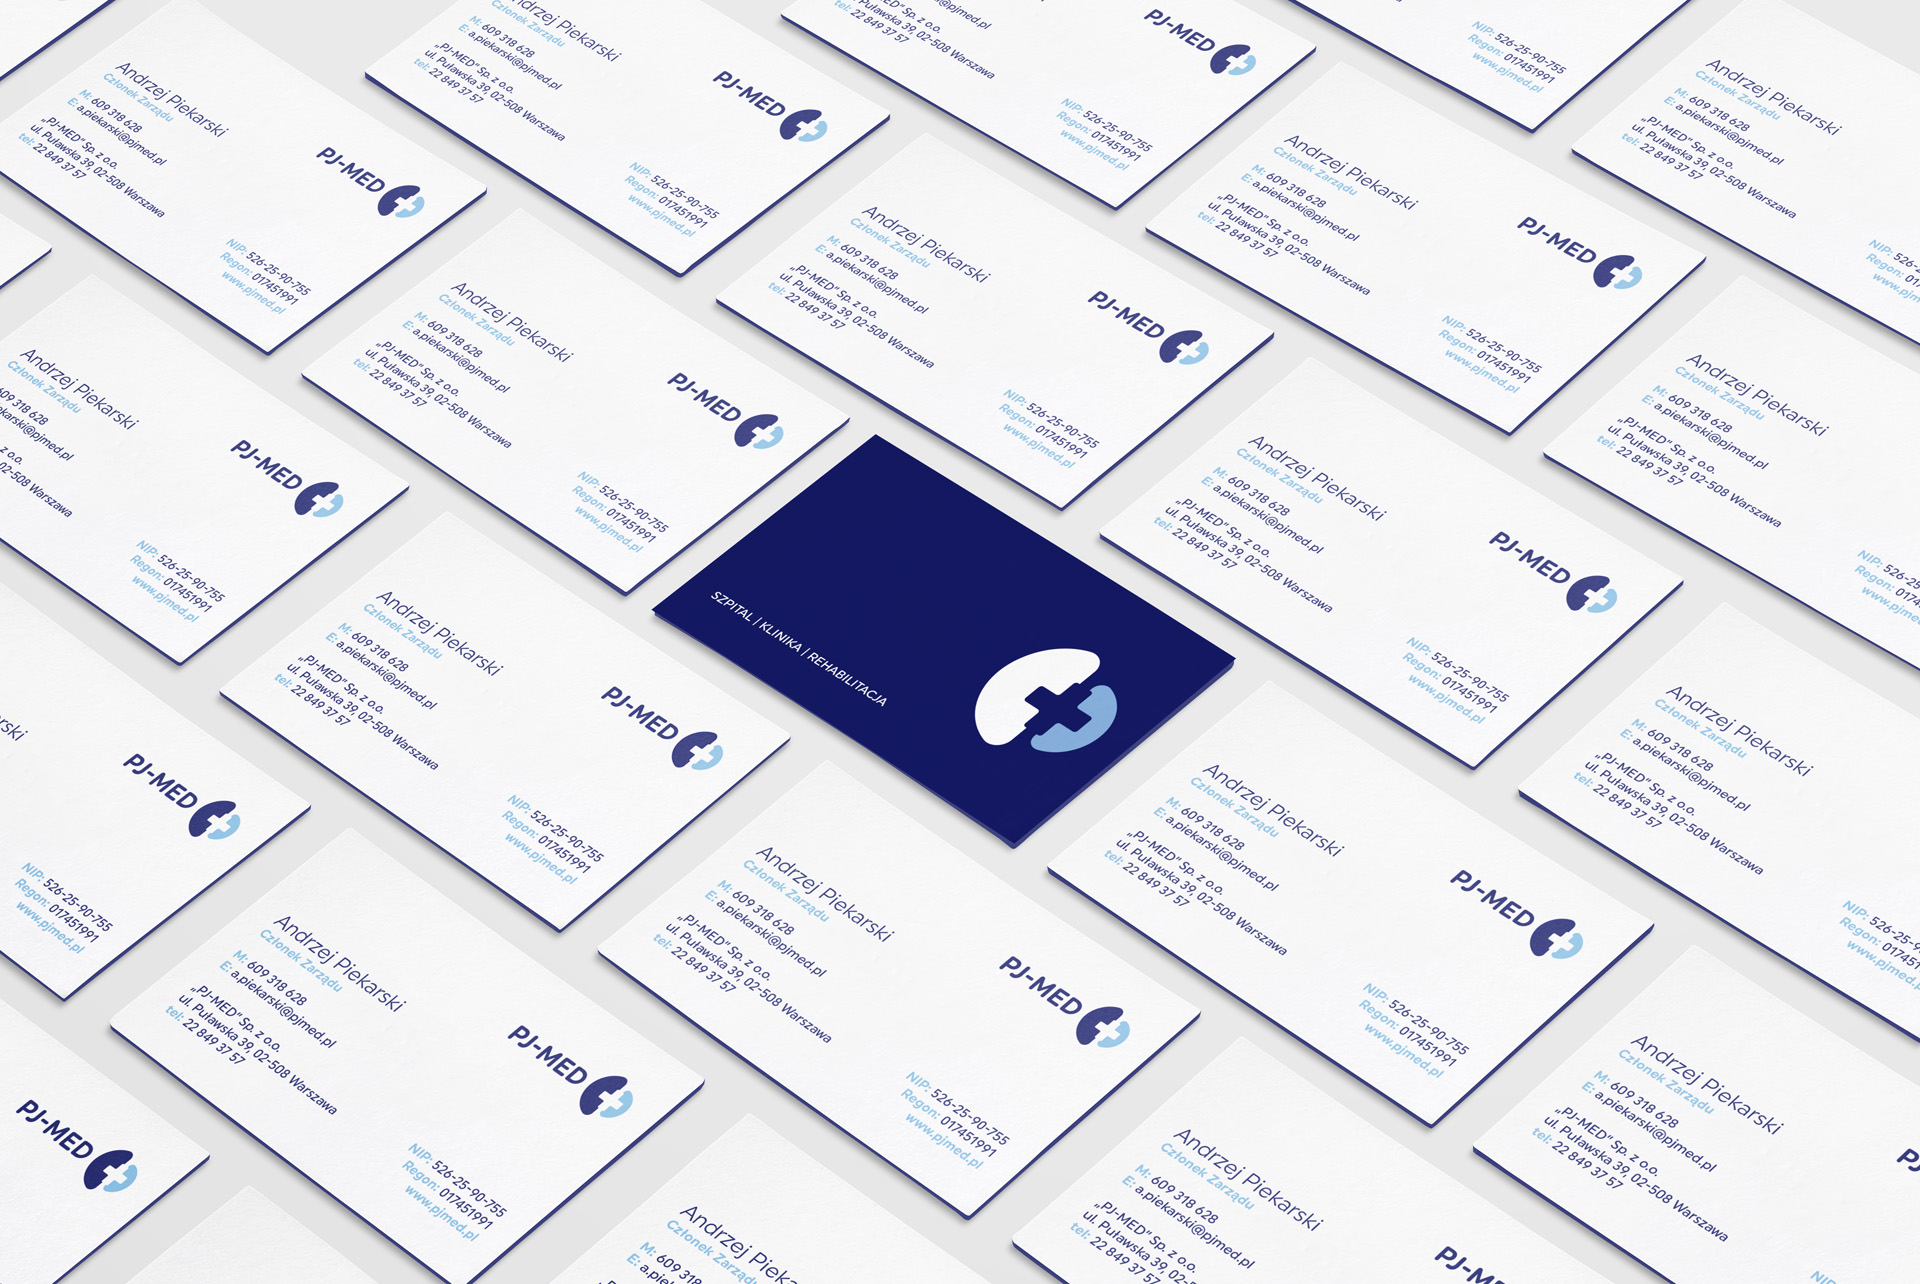 PJMED medical corporate identity